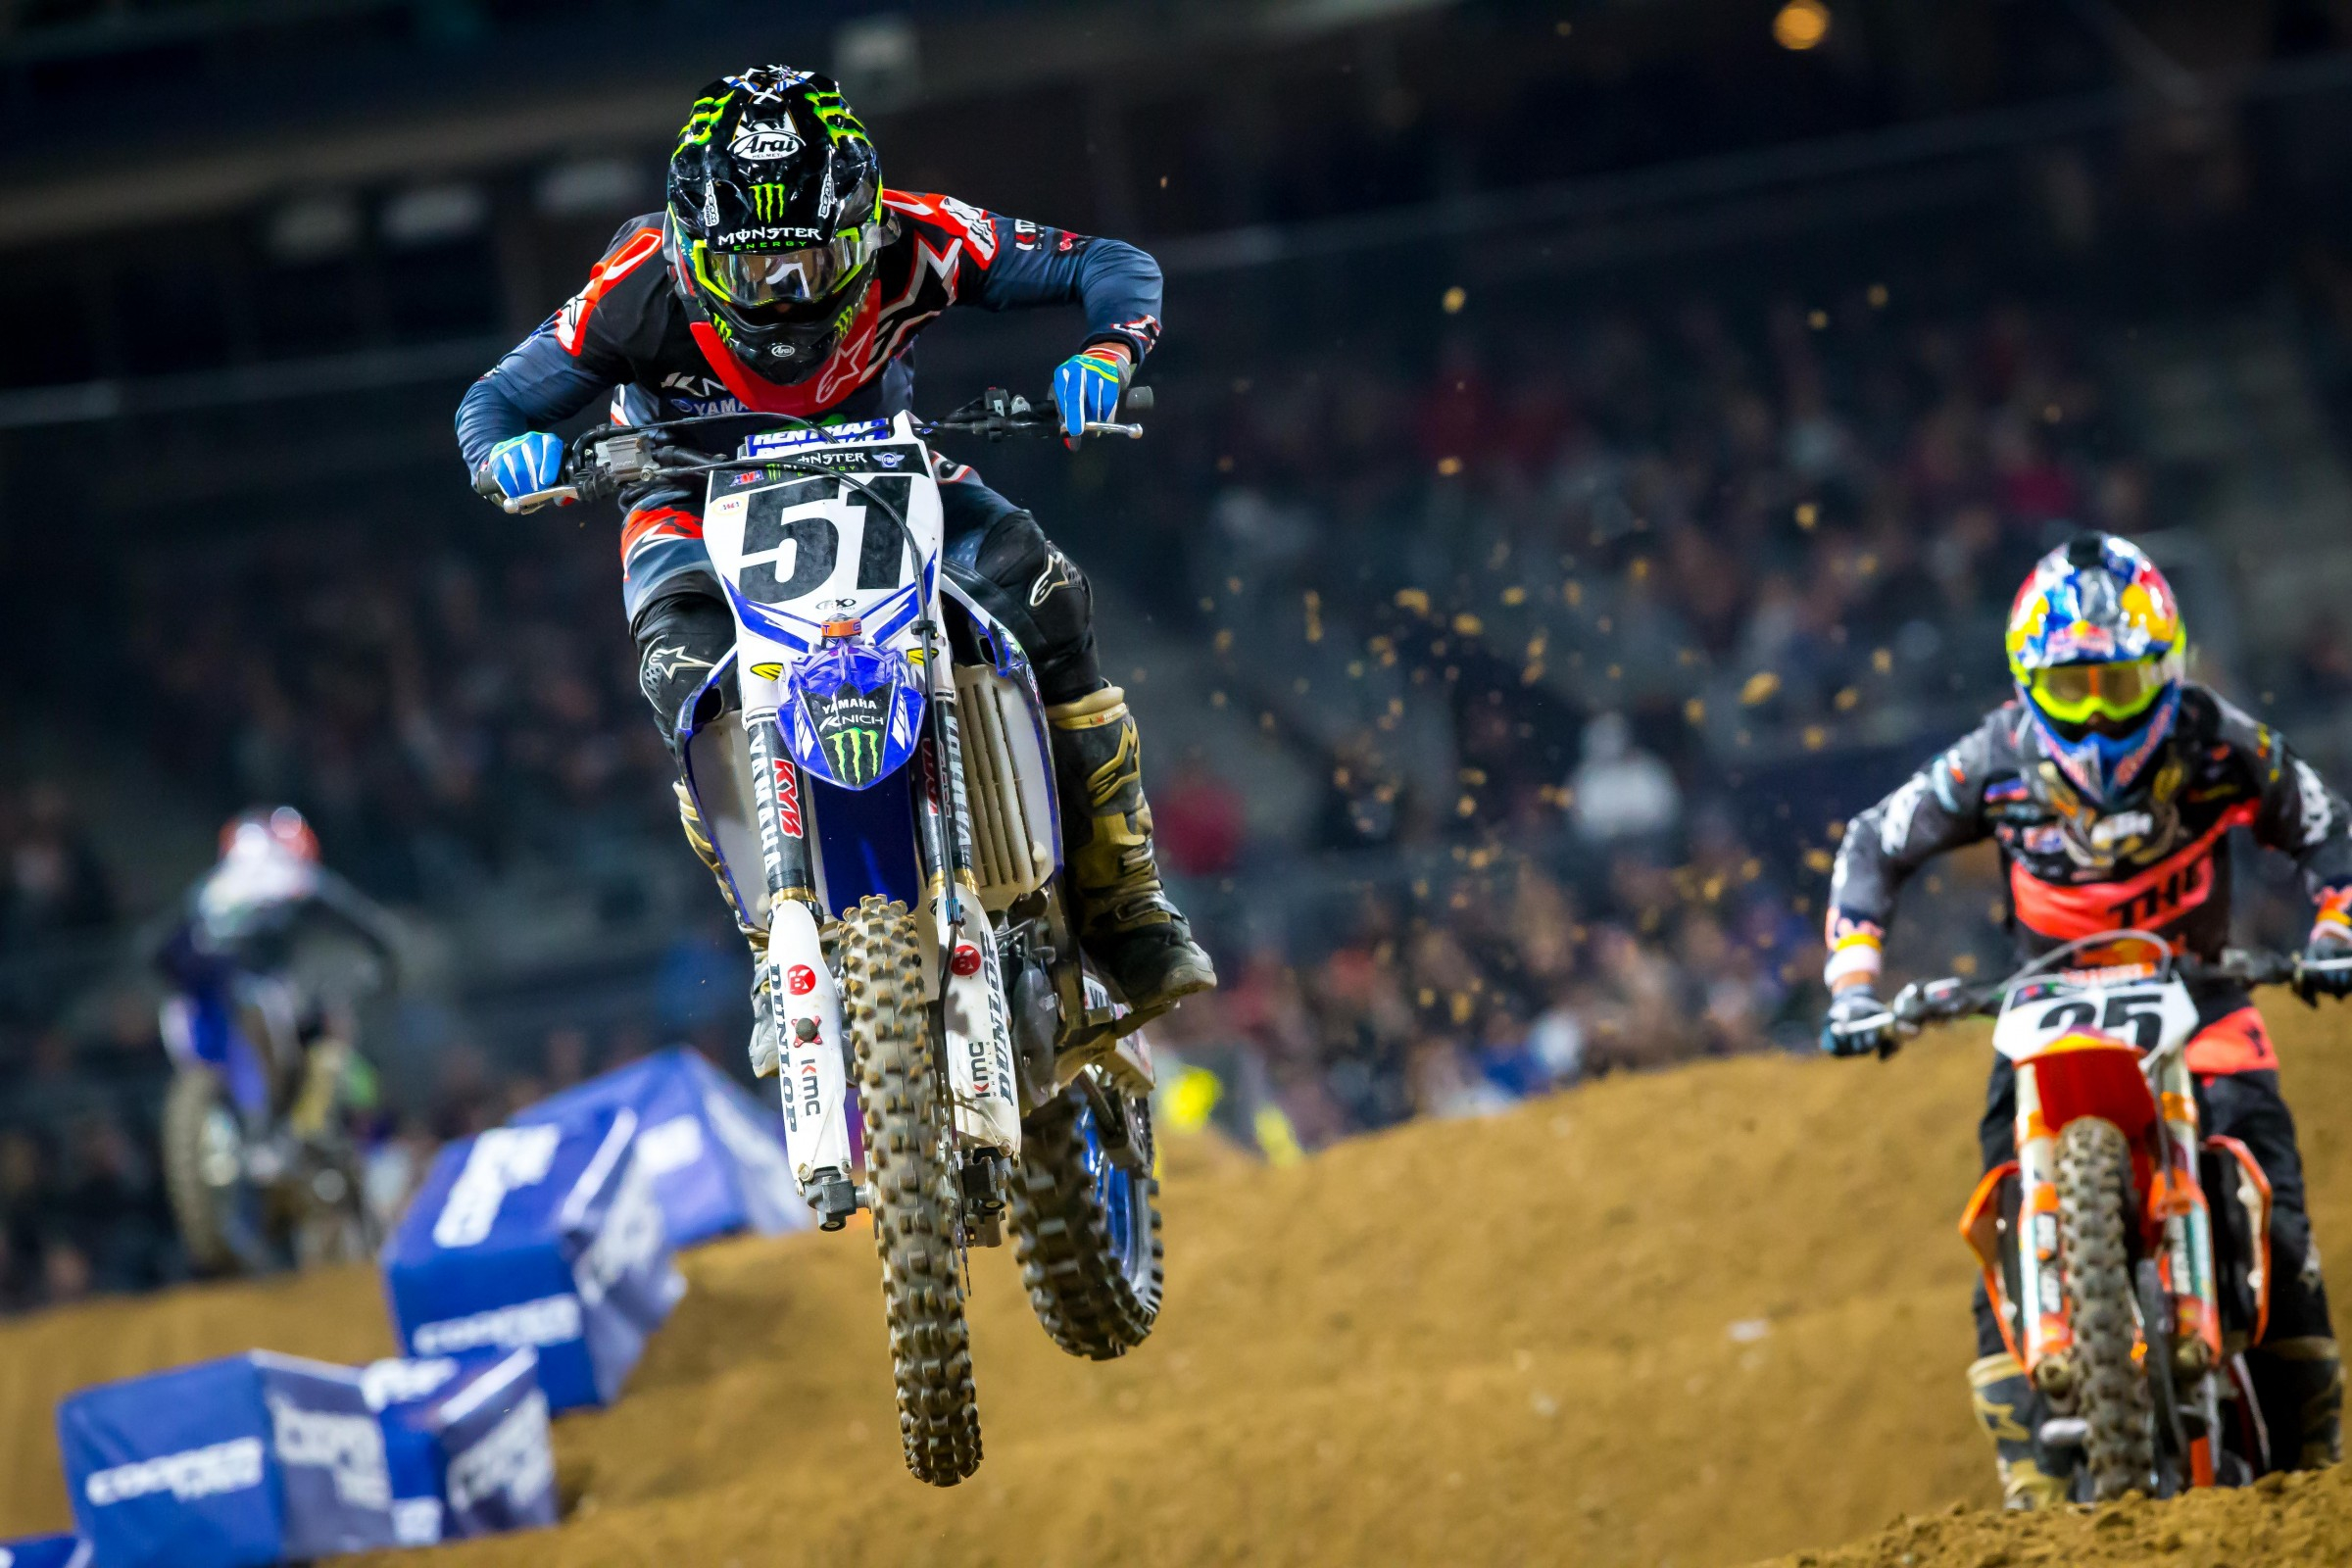 Justin Barcia and Marvin Musquin had a breat battle for third. Barcia intially took the spot away from Musquin, but Musquin got stronger as the race wore on and took it back. Barcia ended up sliding backward all the way to eighth.